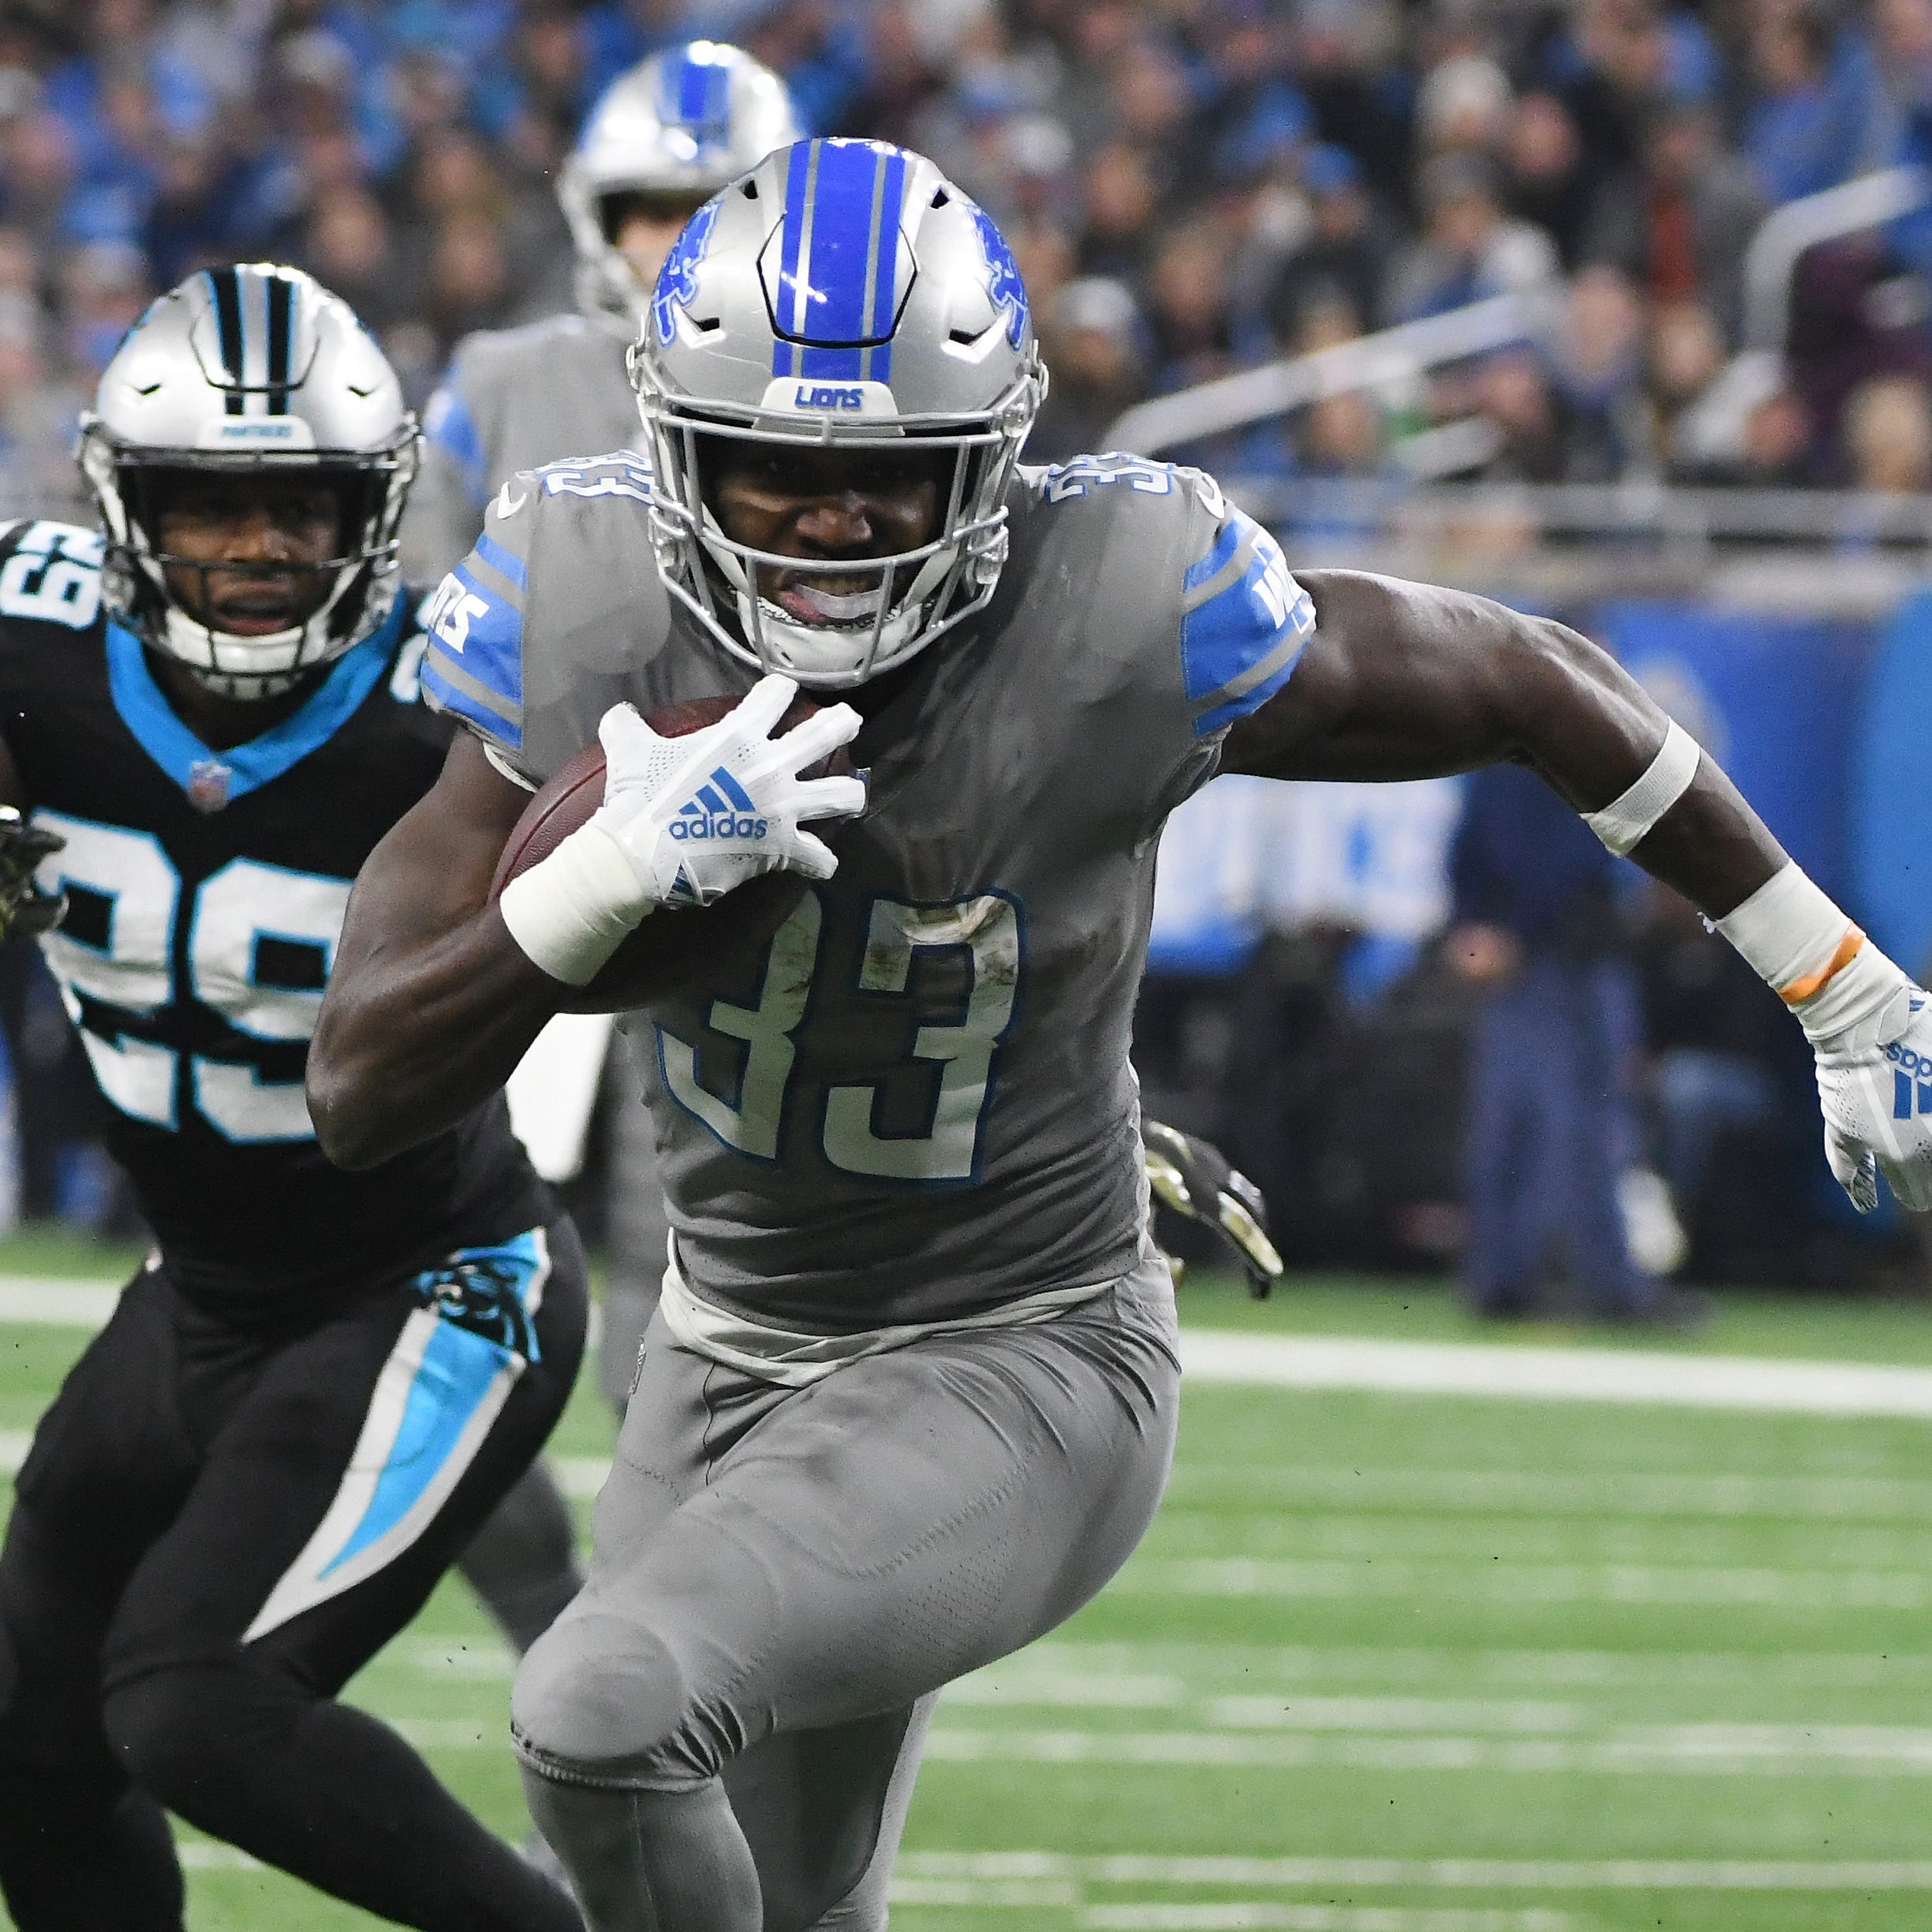 Wojo: No spoiler here – Kerryon Johnson the key to Lions' offense